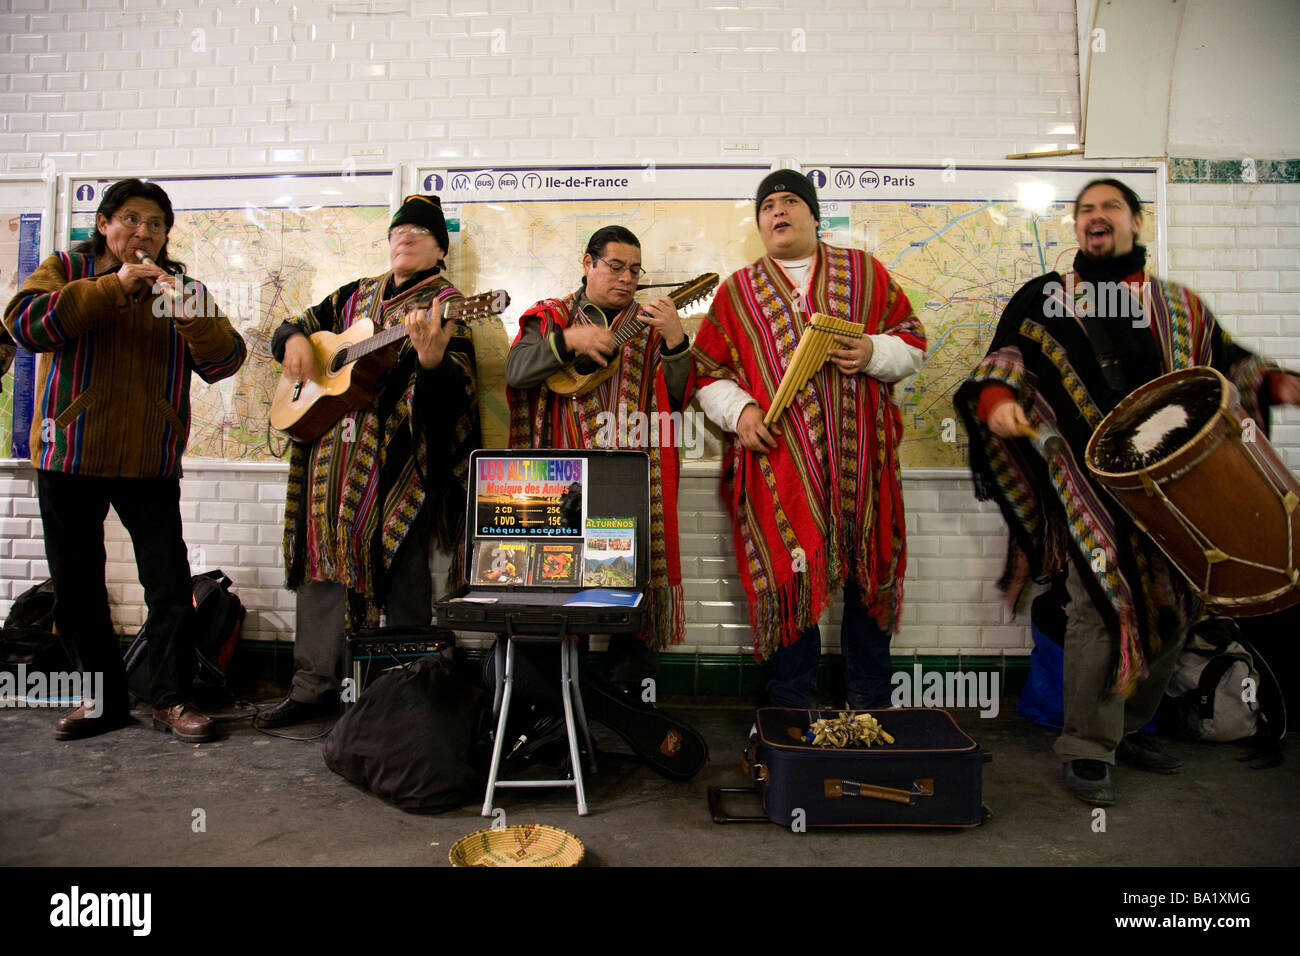 A customary scene in cosmopolitan Paris, a Peruvian pipe band perform to the rushing public in a busy underground - Stock Image